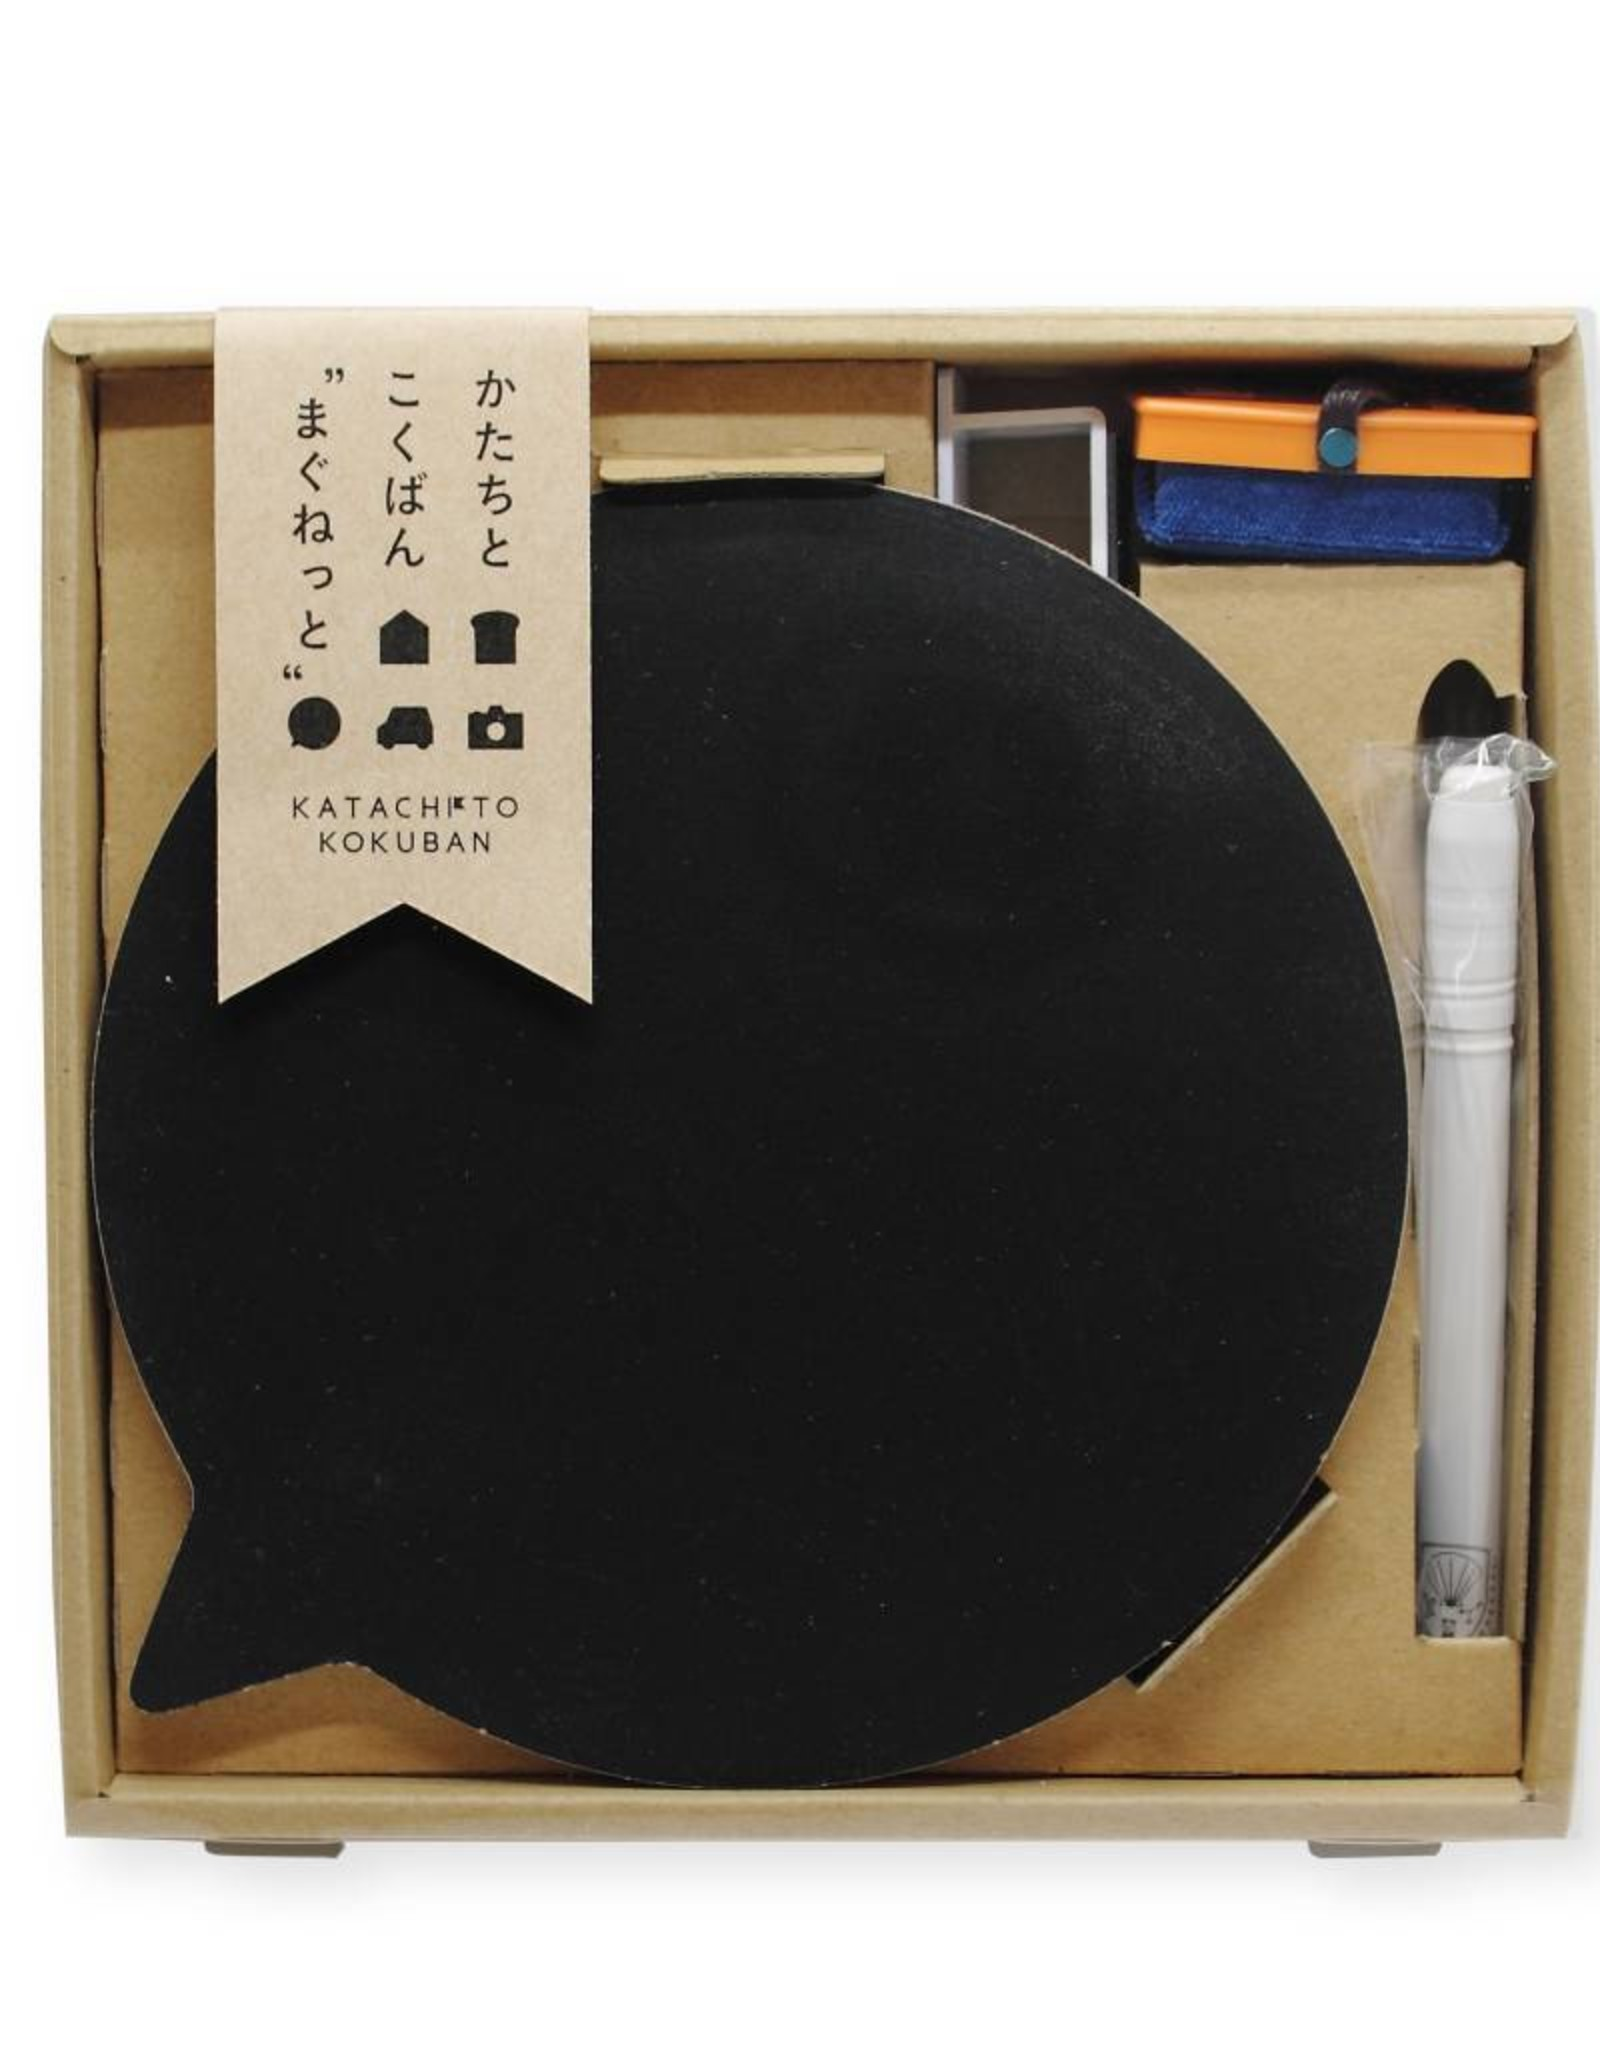 Kitpas Shape Your Day Chalkboard Magnet Set